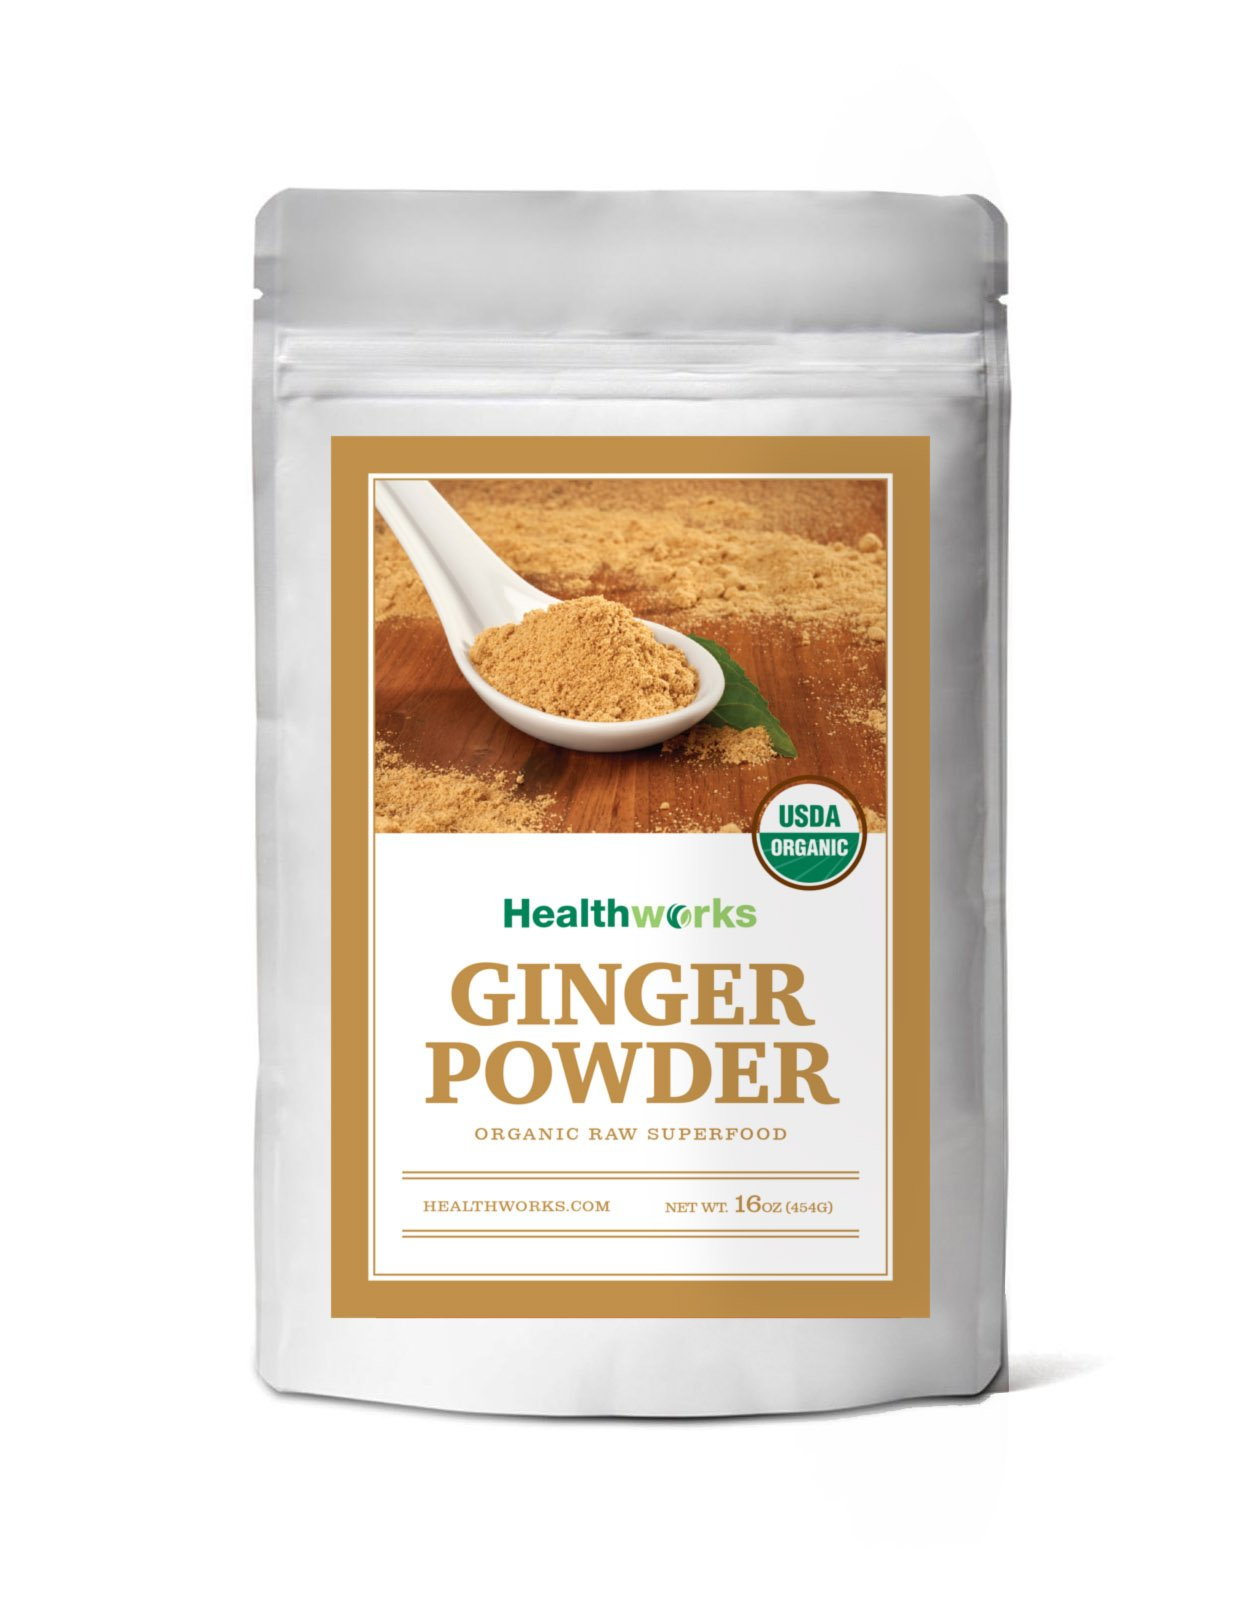 Healthworks Ginger Powder Raw Organic, 1lb